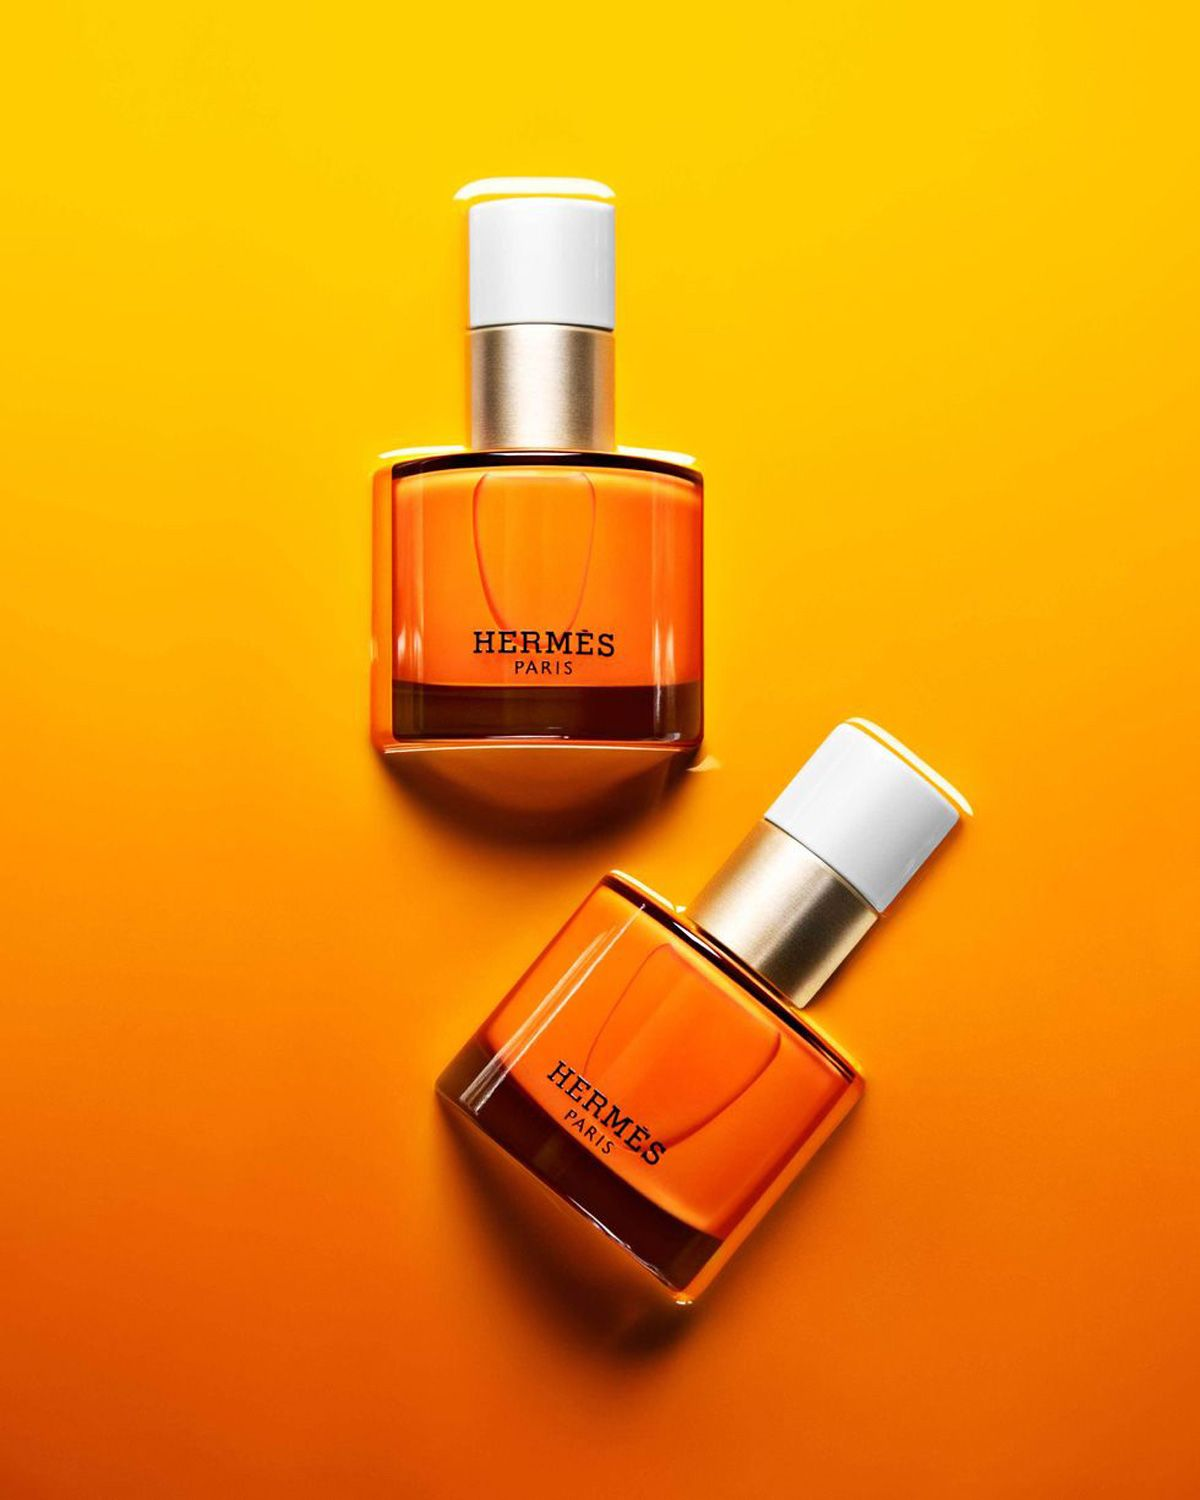 Hermès Nail Polish Is Exclusive, Not Inclusive